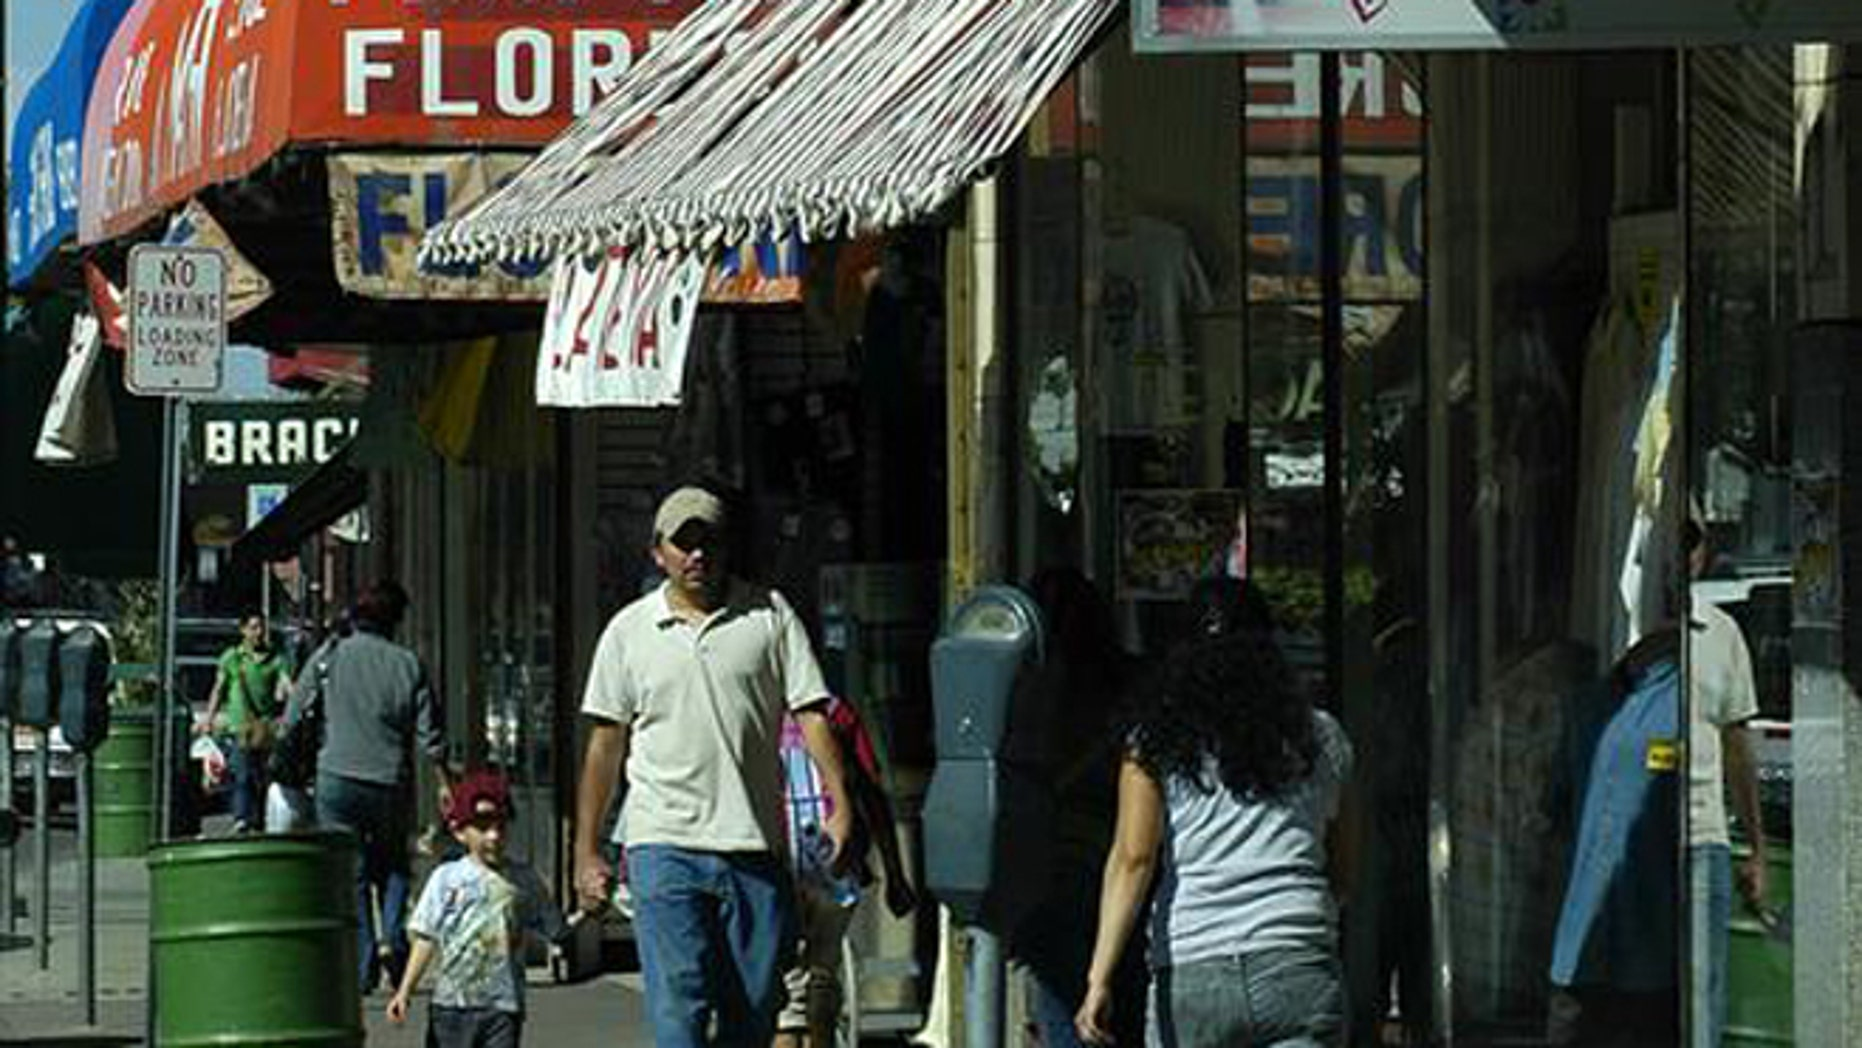 Shown here are businesses in Nogales, Ariz.